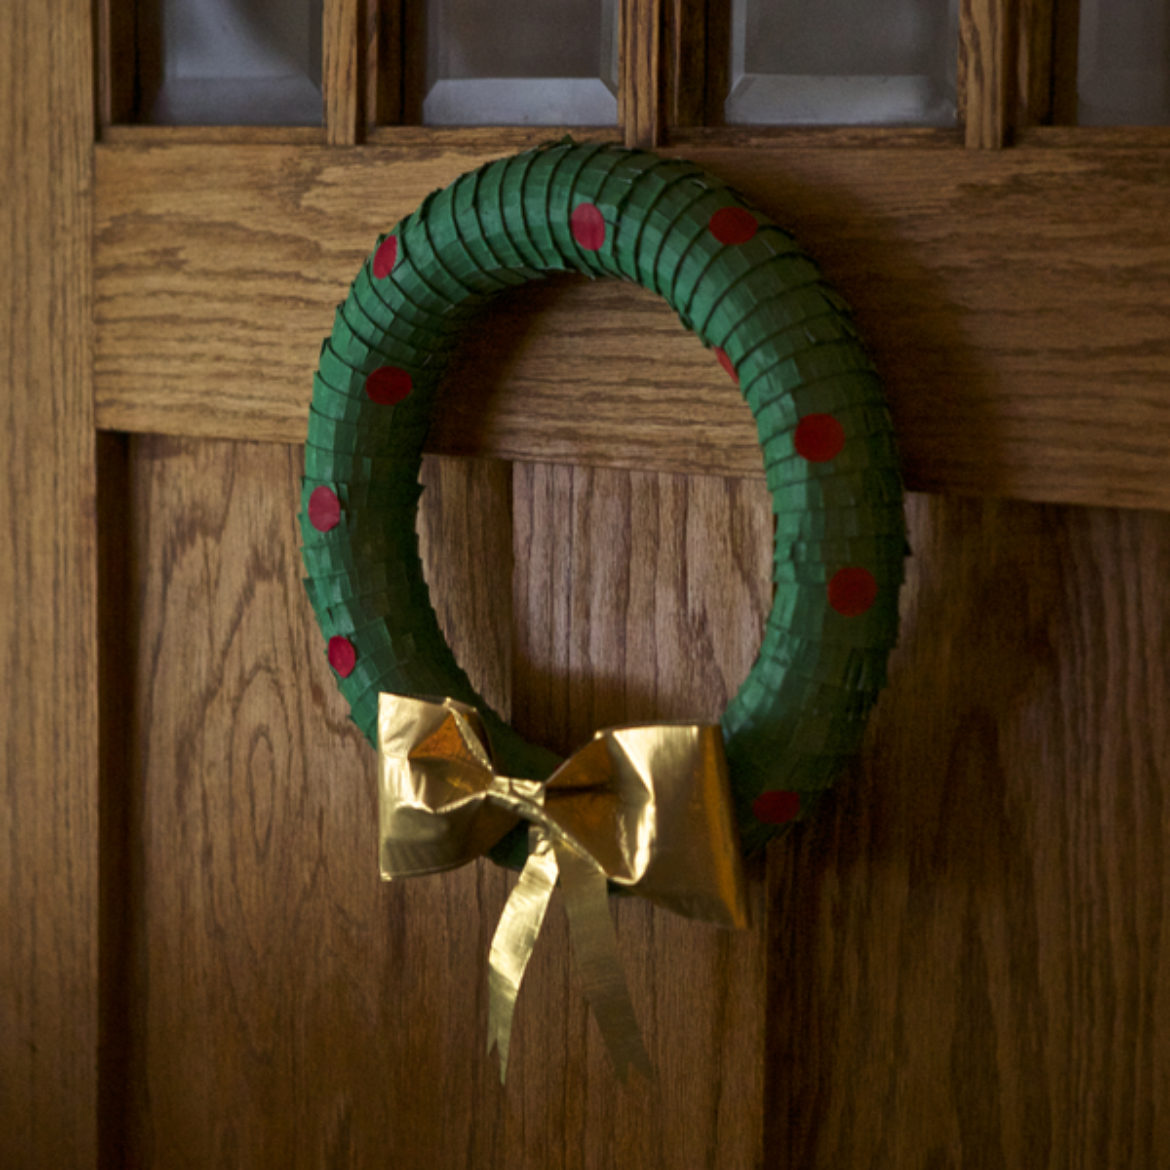 Completed  Duck Tape®Holiday Wreath hanging on a door